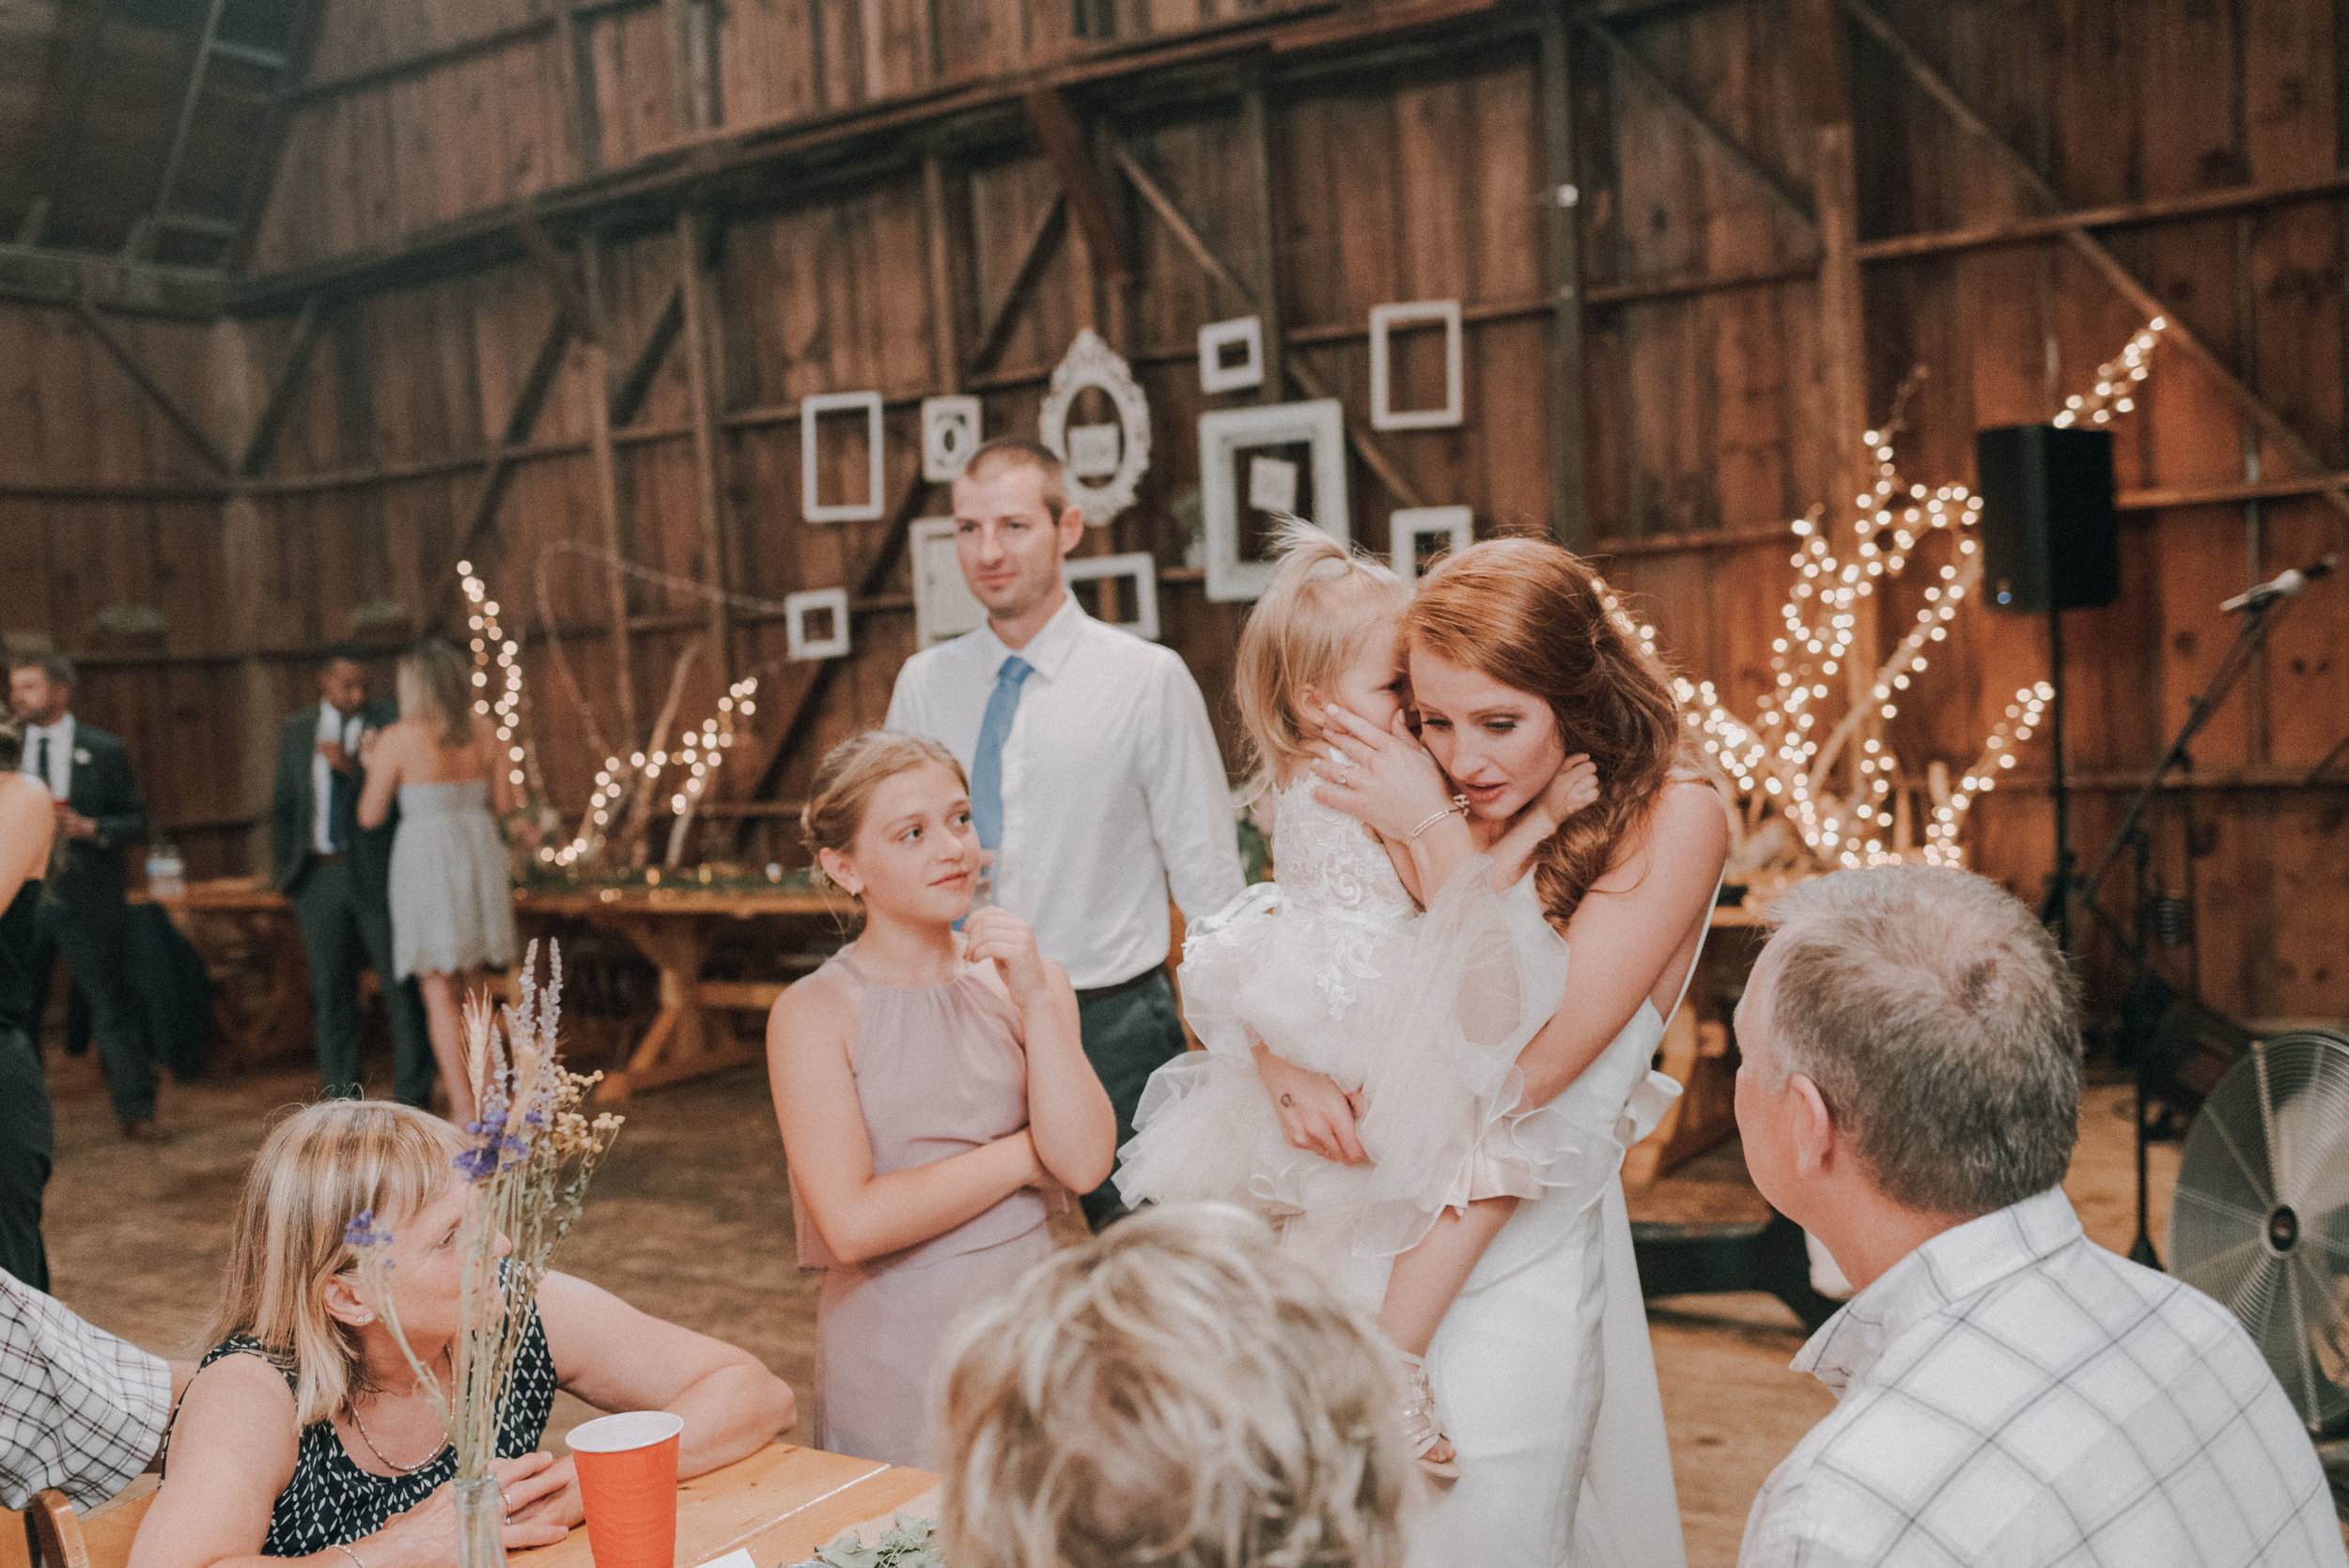 DellwoodBarnWeddings-94.jpg